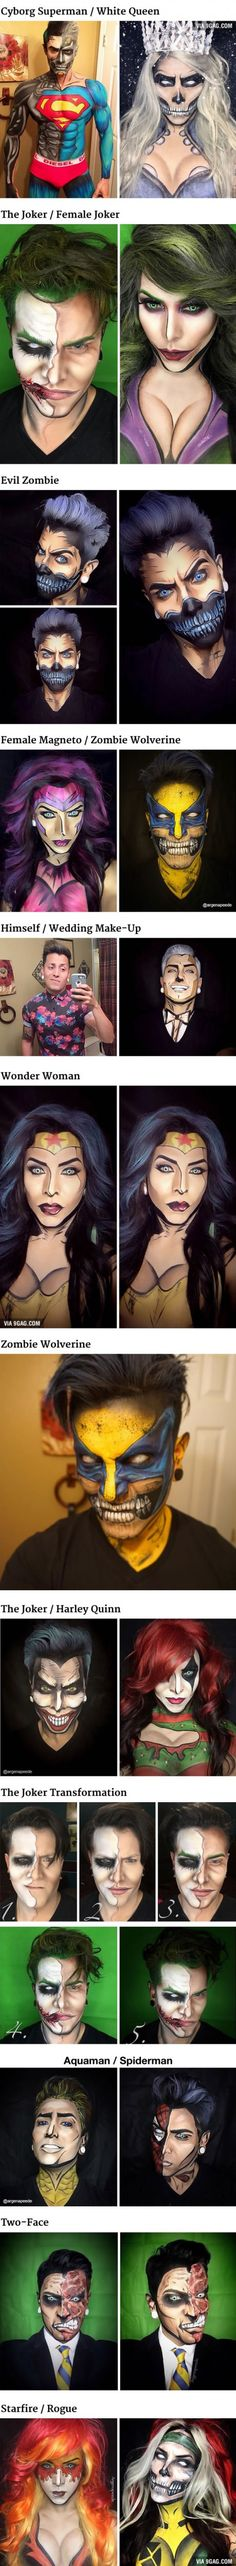 The Artist Turns Himself Into Marvel And DC Characters Using Only Makeup